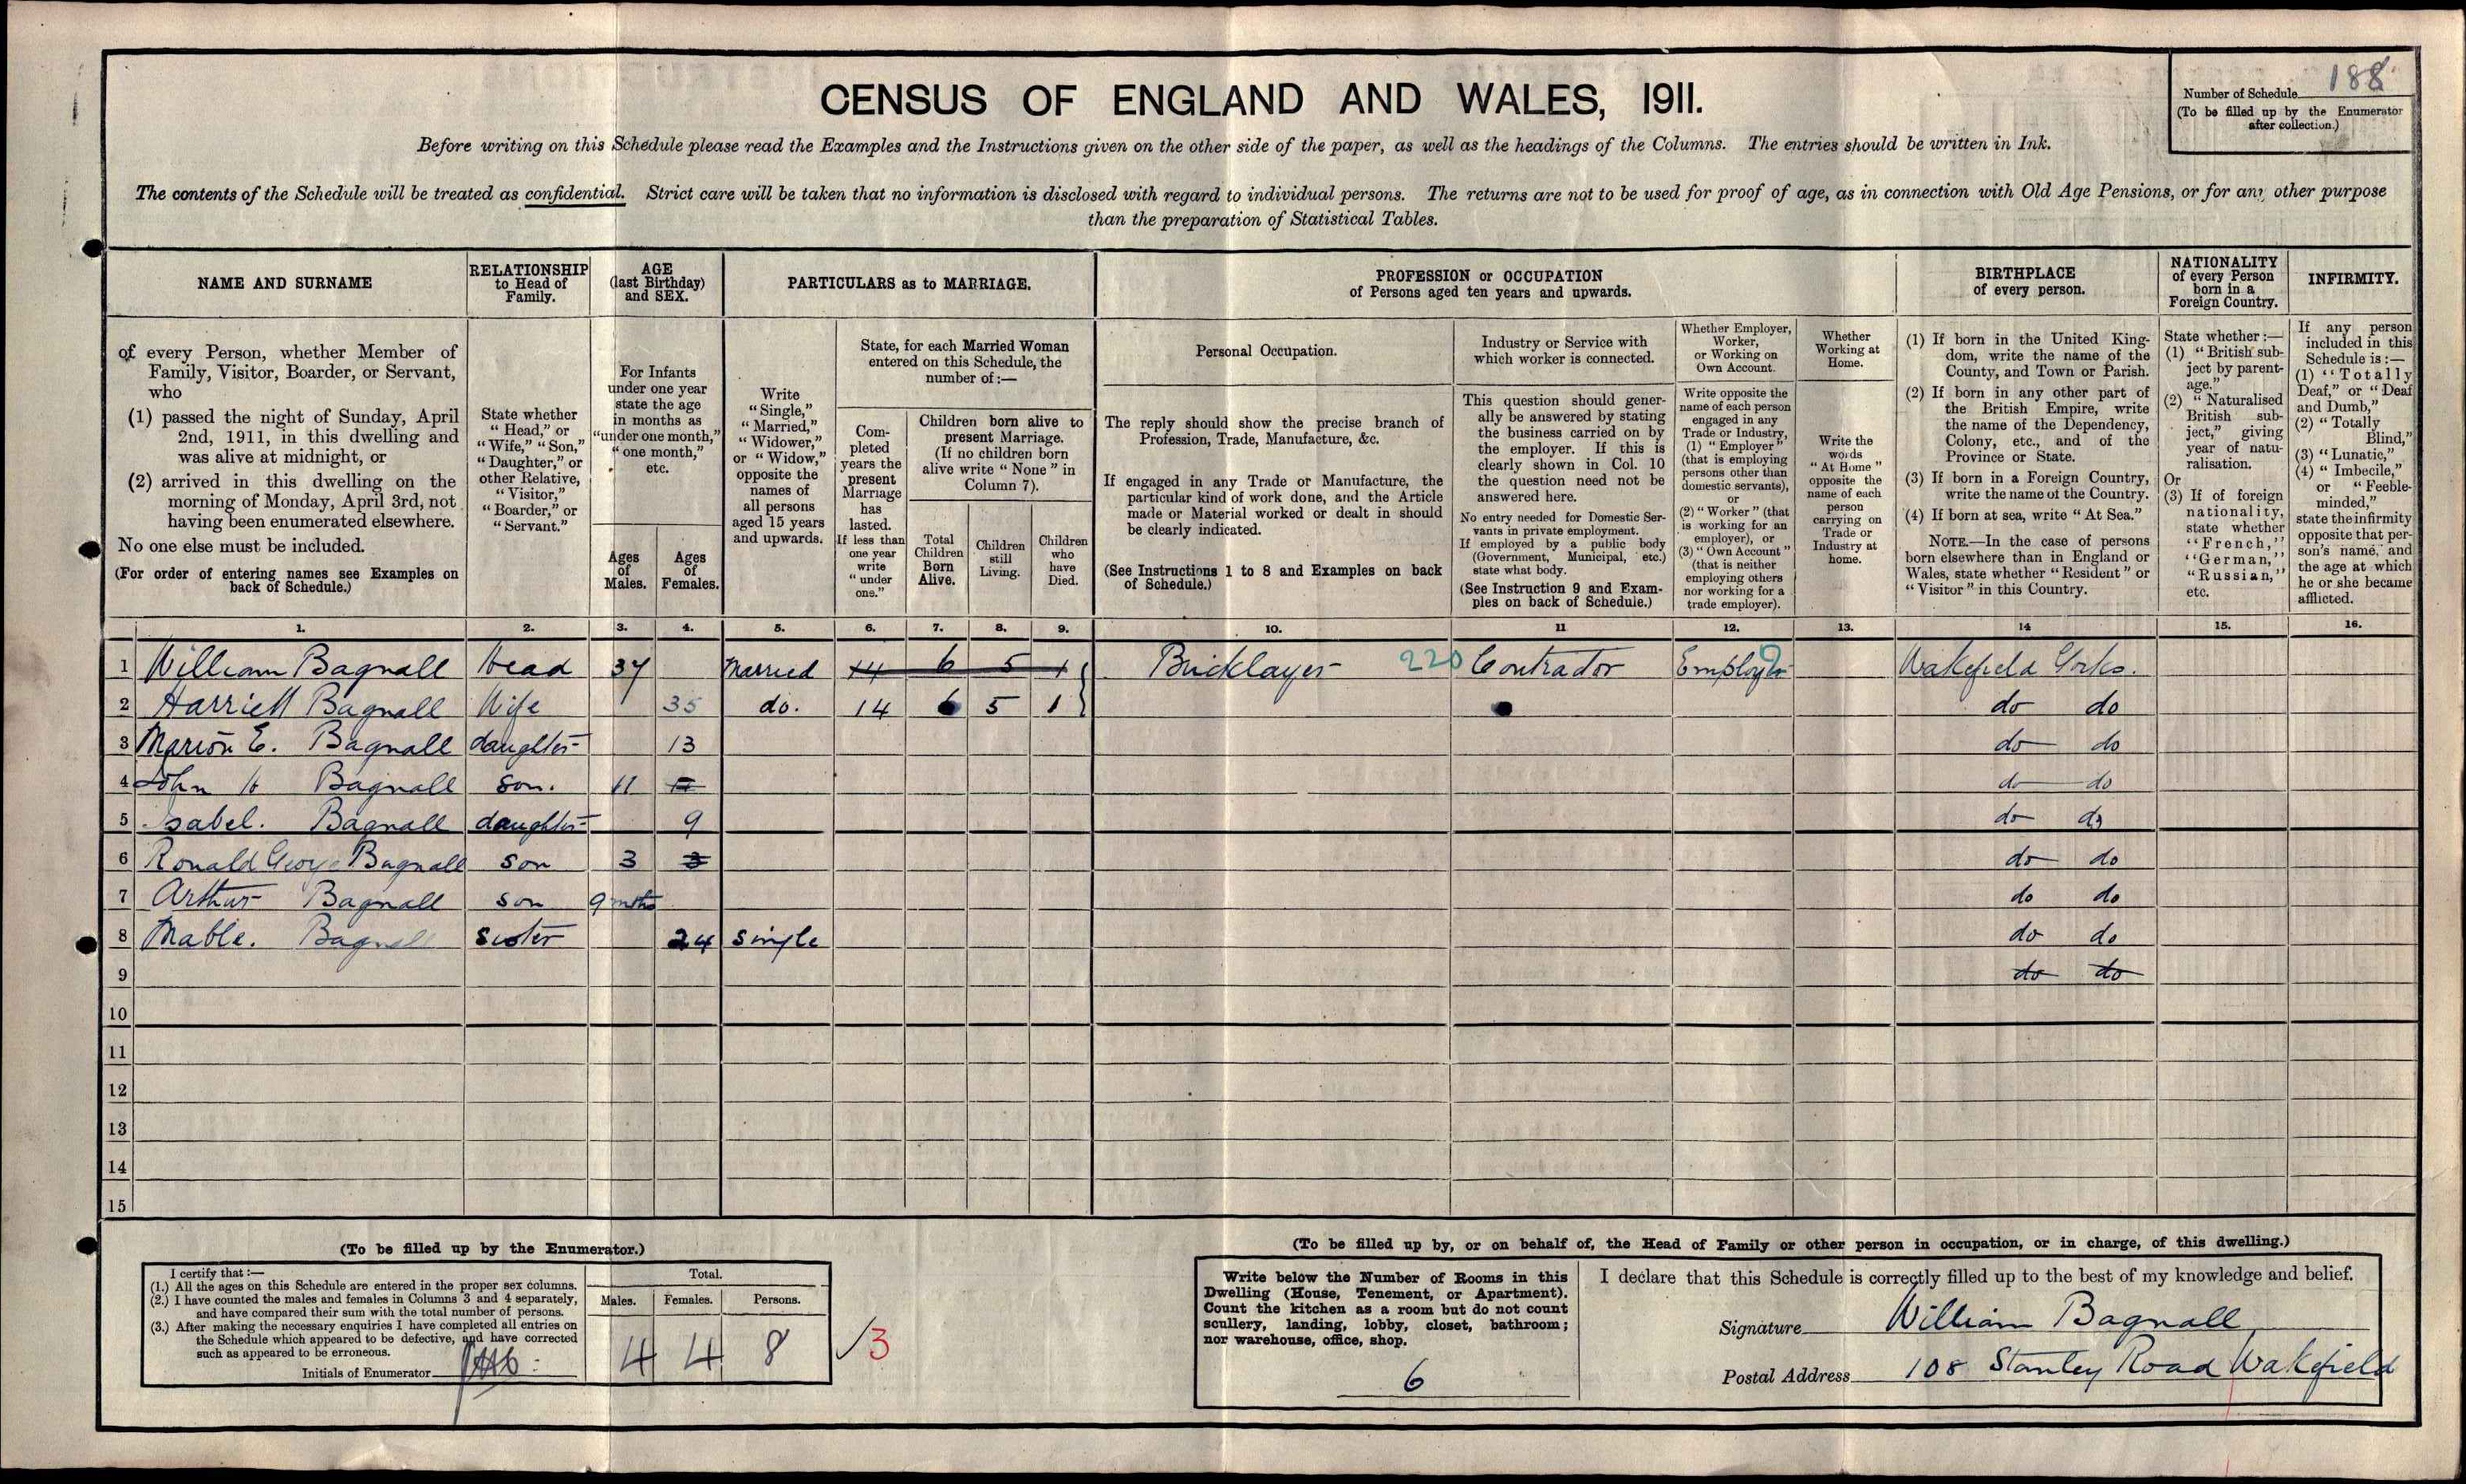 1911 Census entry for William Bagnall Household